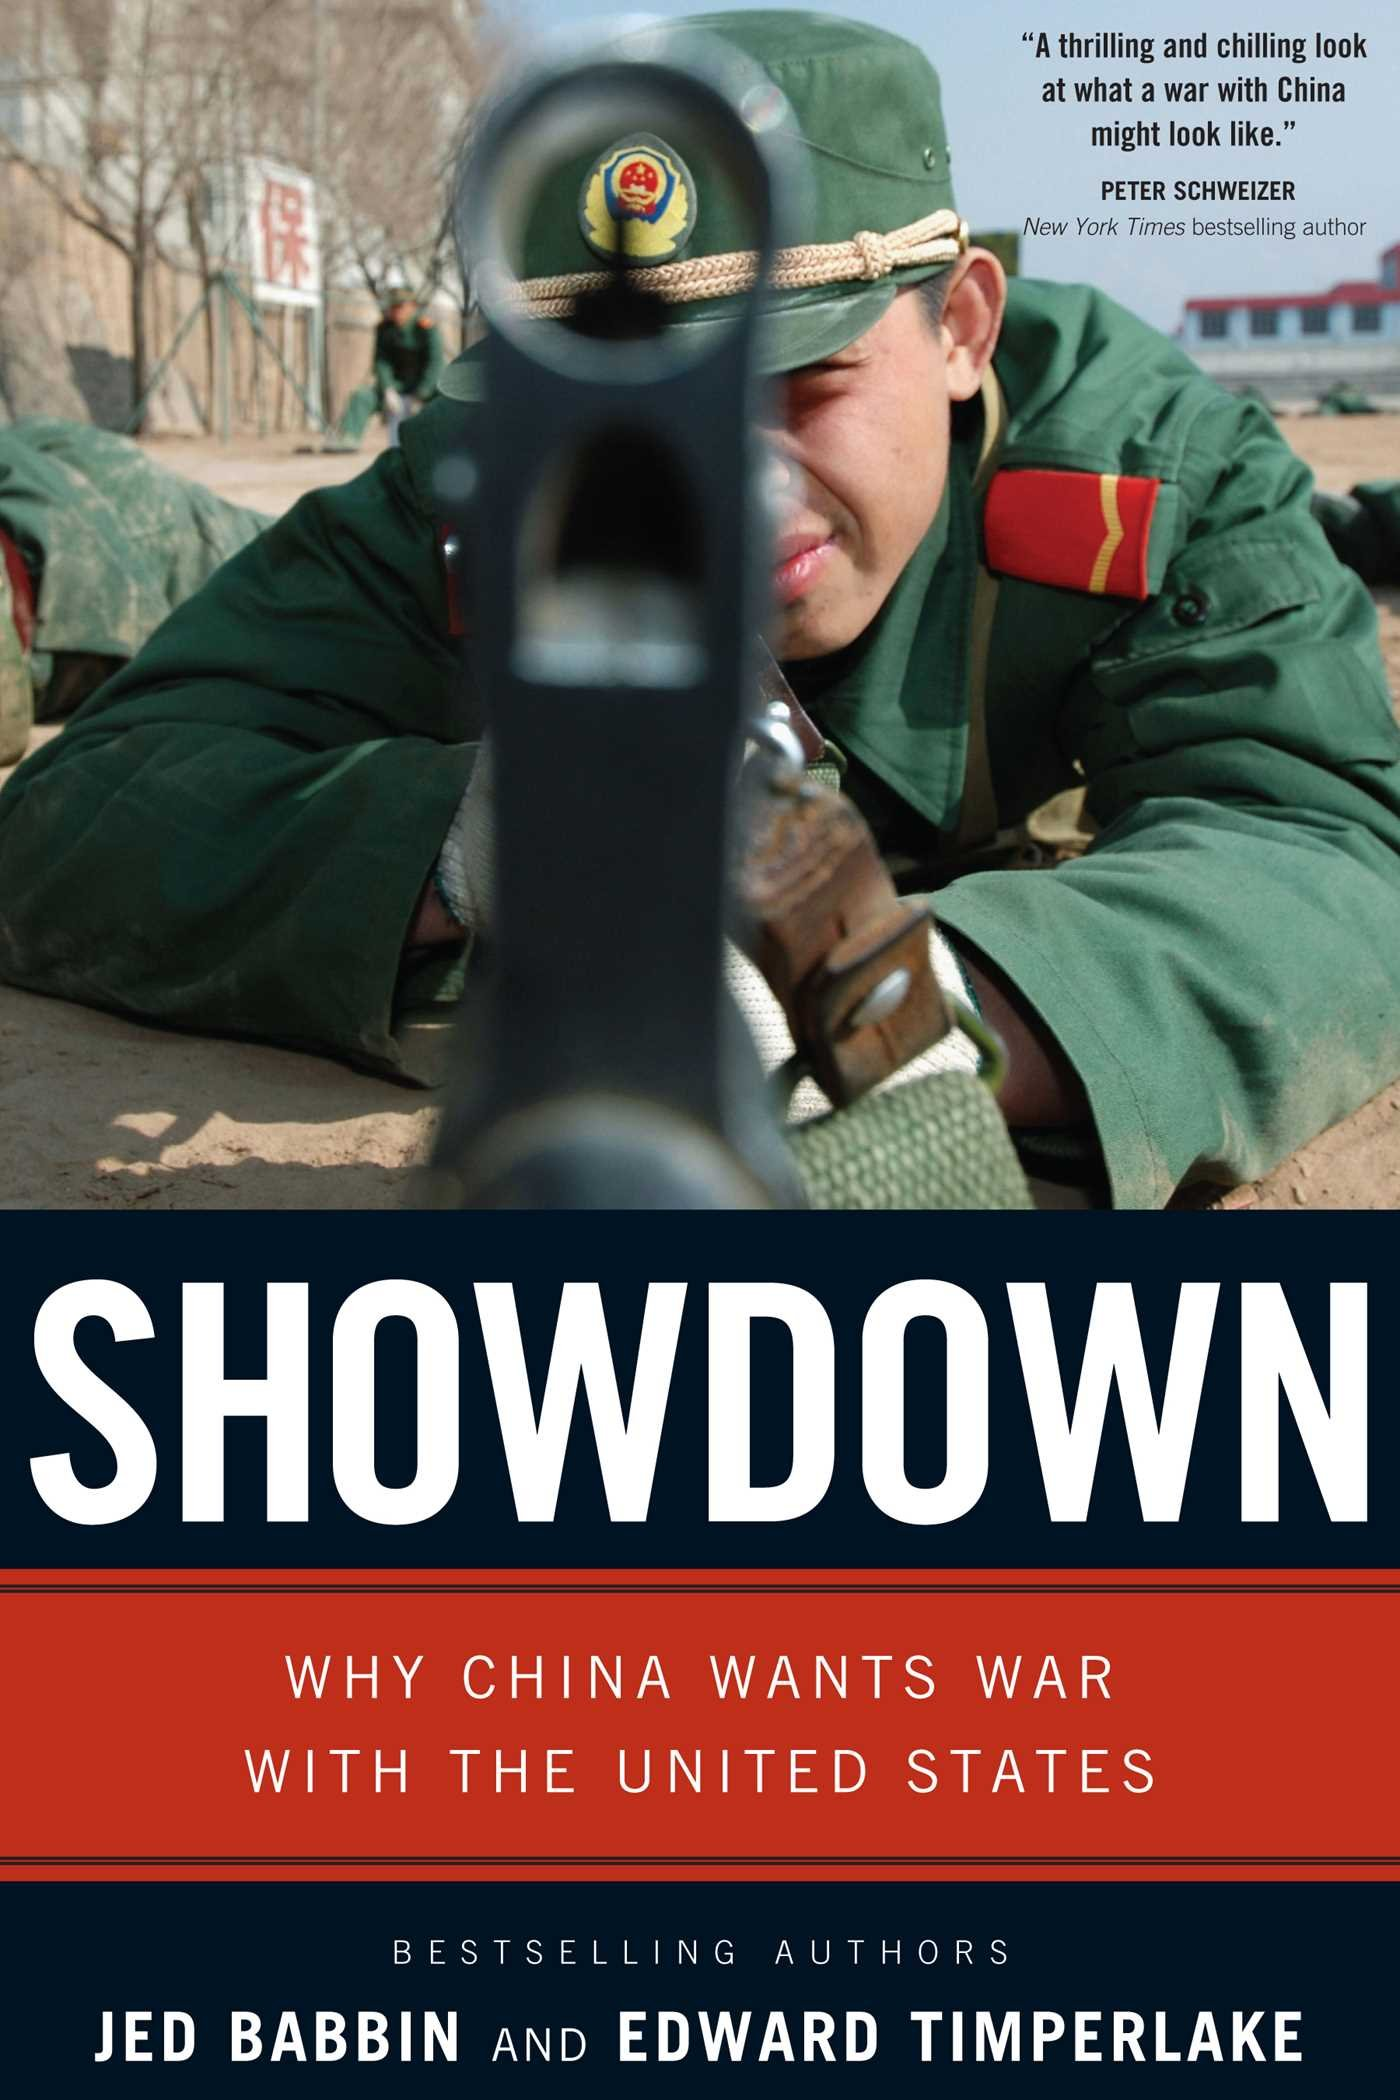 Showdown: Why China Wants War With the United States pdf